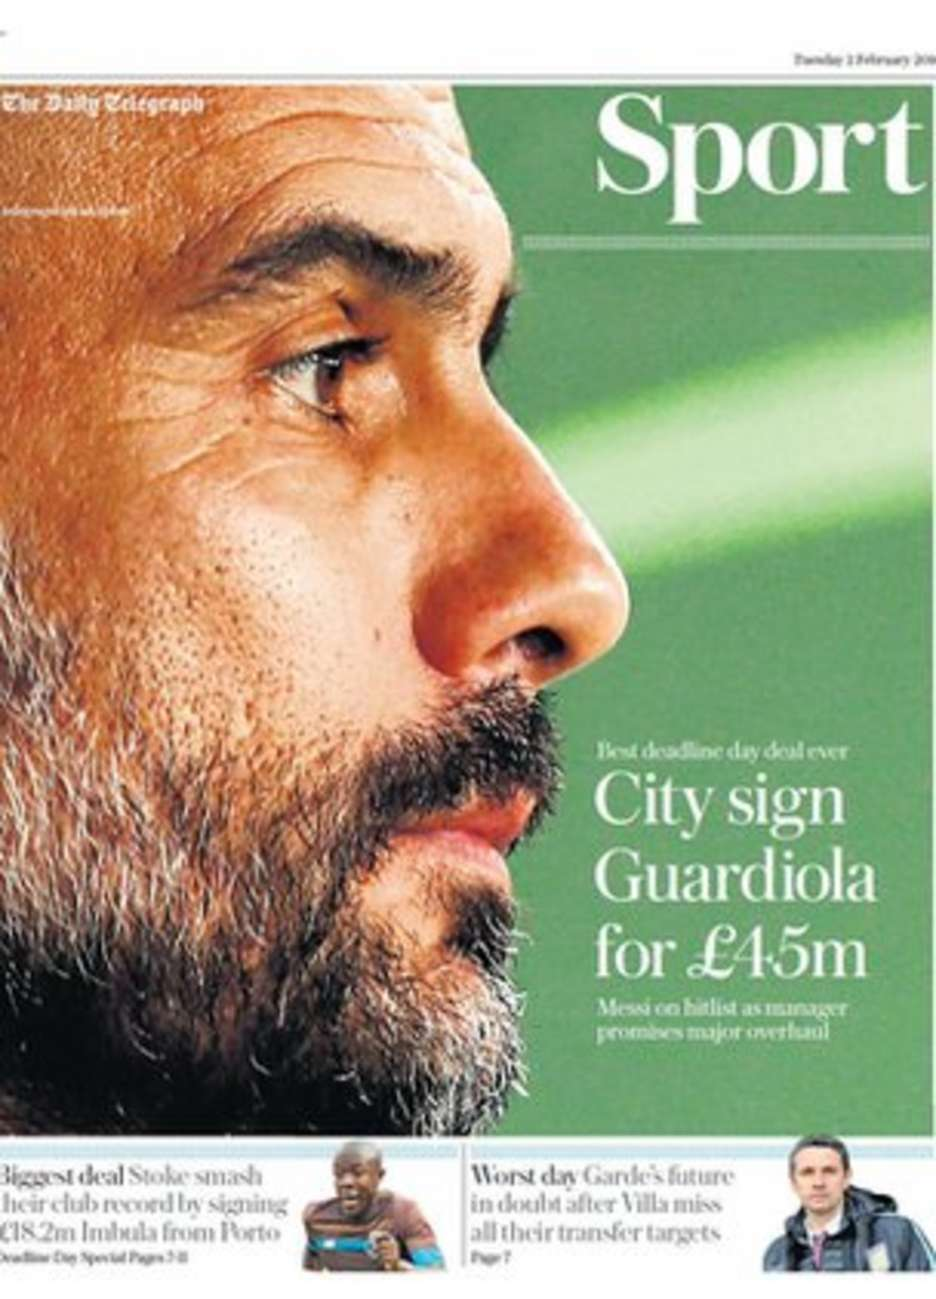 Today's newspaper gossip: Guardiola best paid coach in the world, Terry could move to Qatar